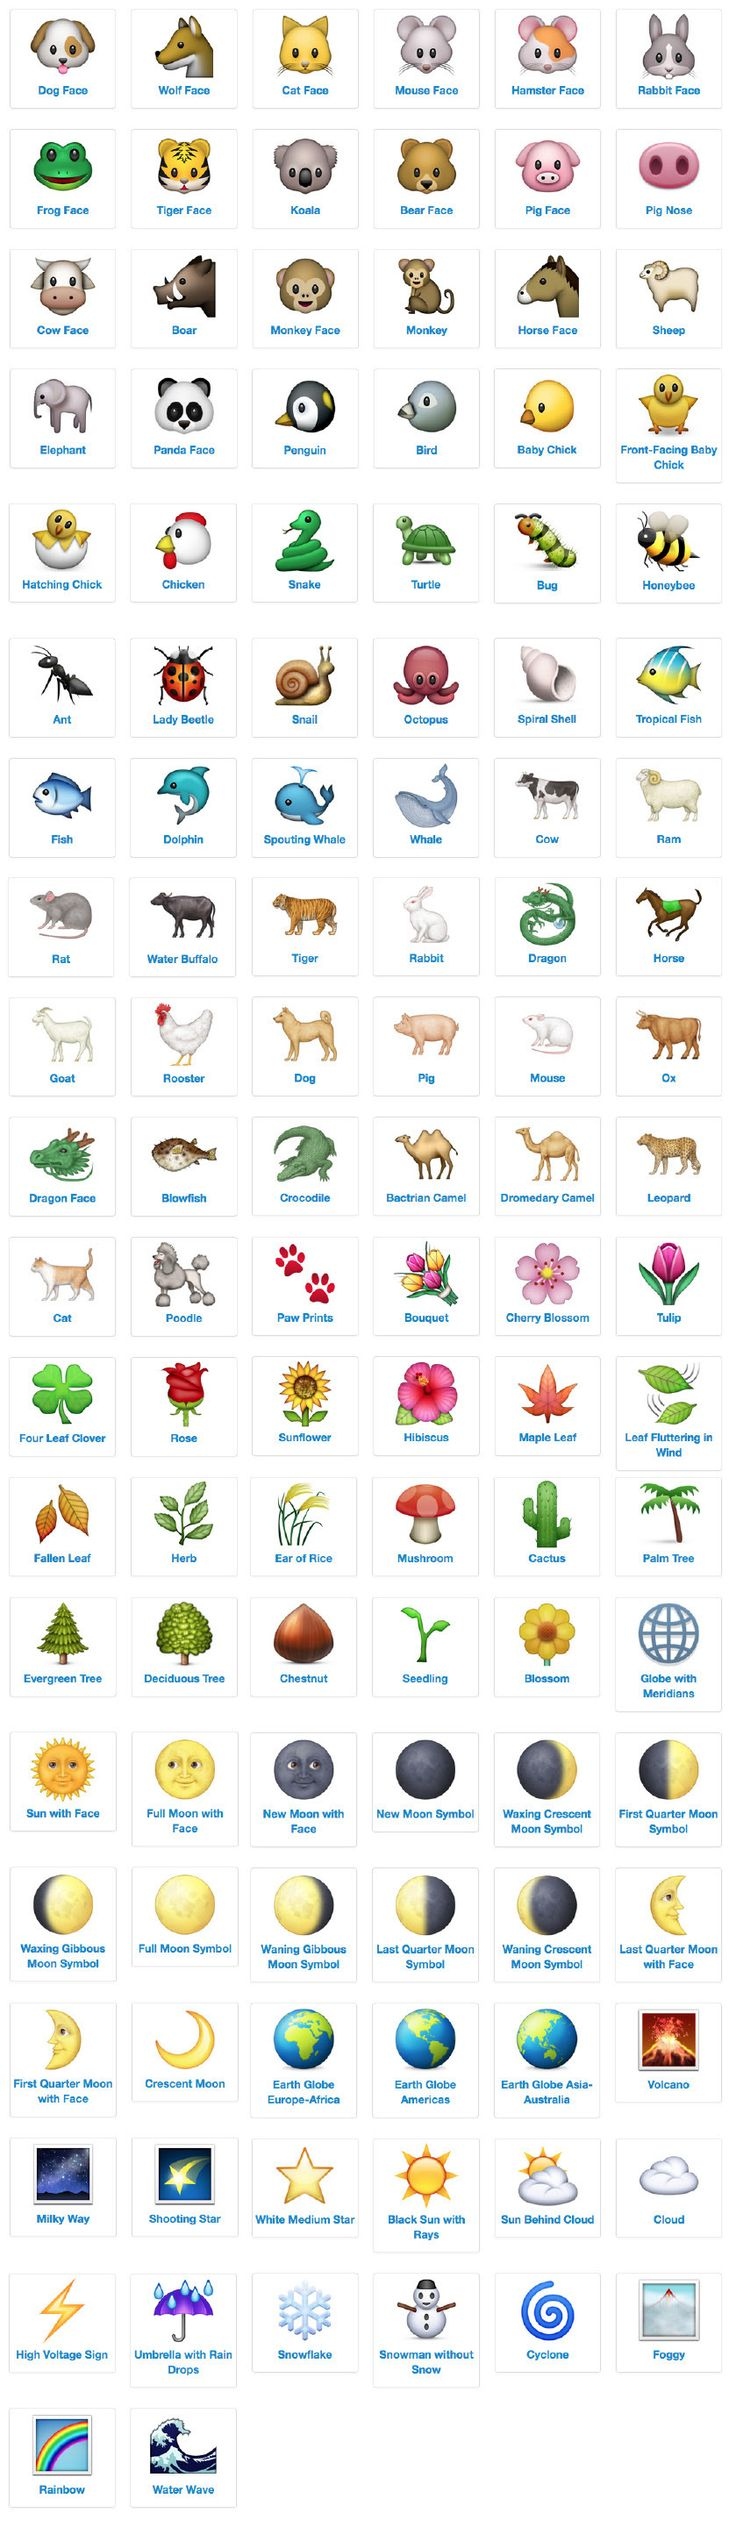 Snapchat emoji meanings everything you need to know - Emoji Icon List Nature And Animals With Meanings And Definitions